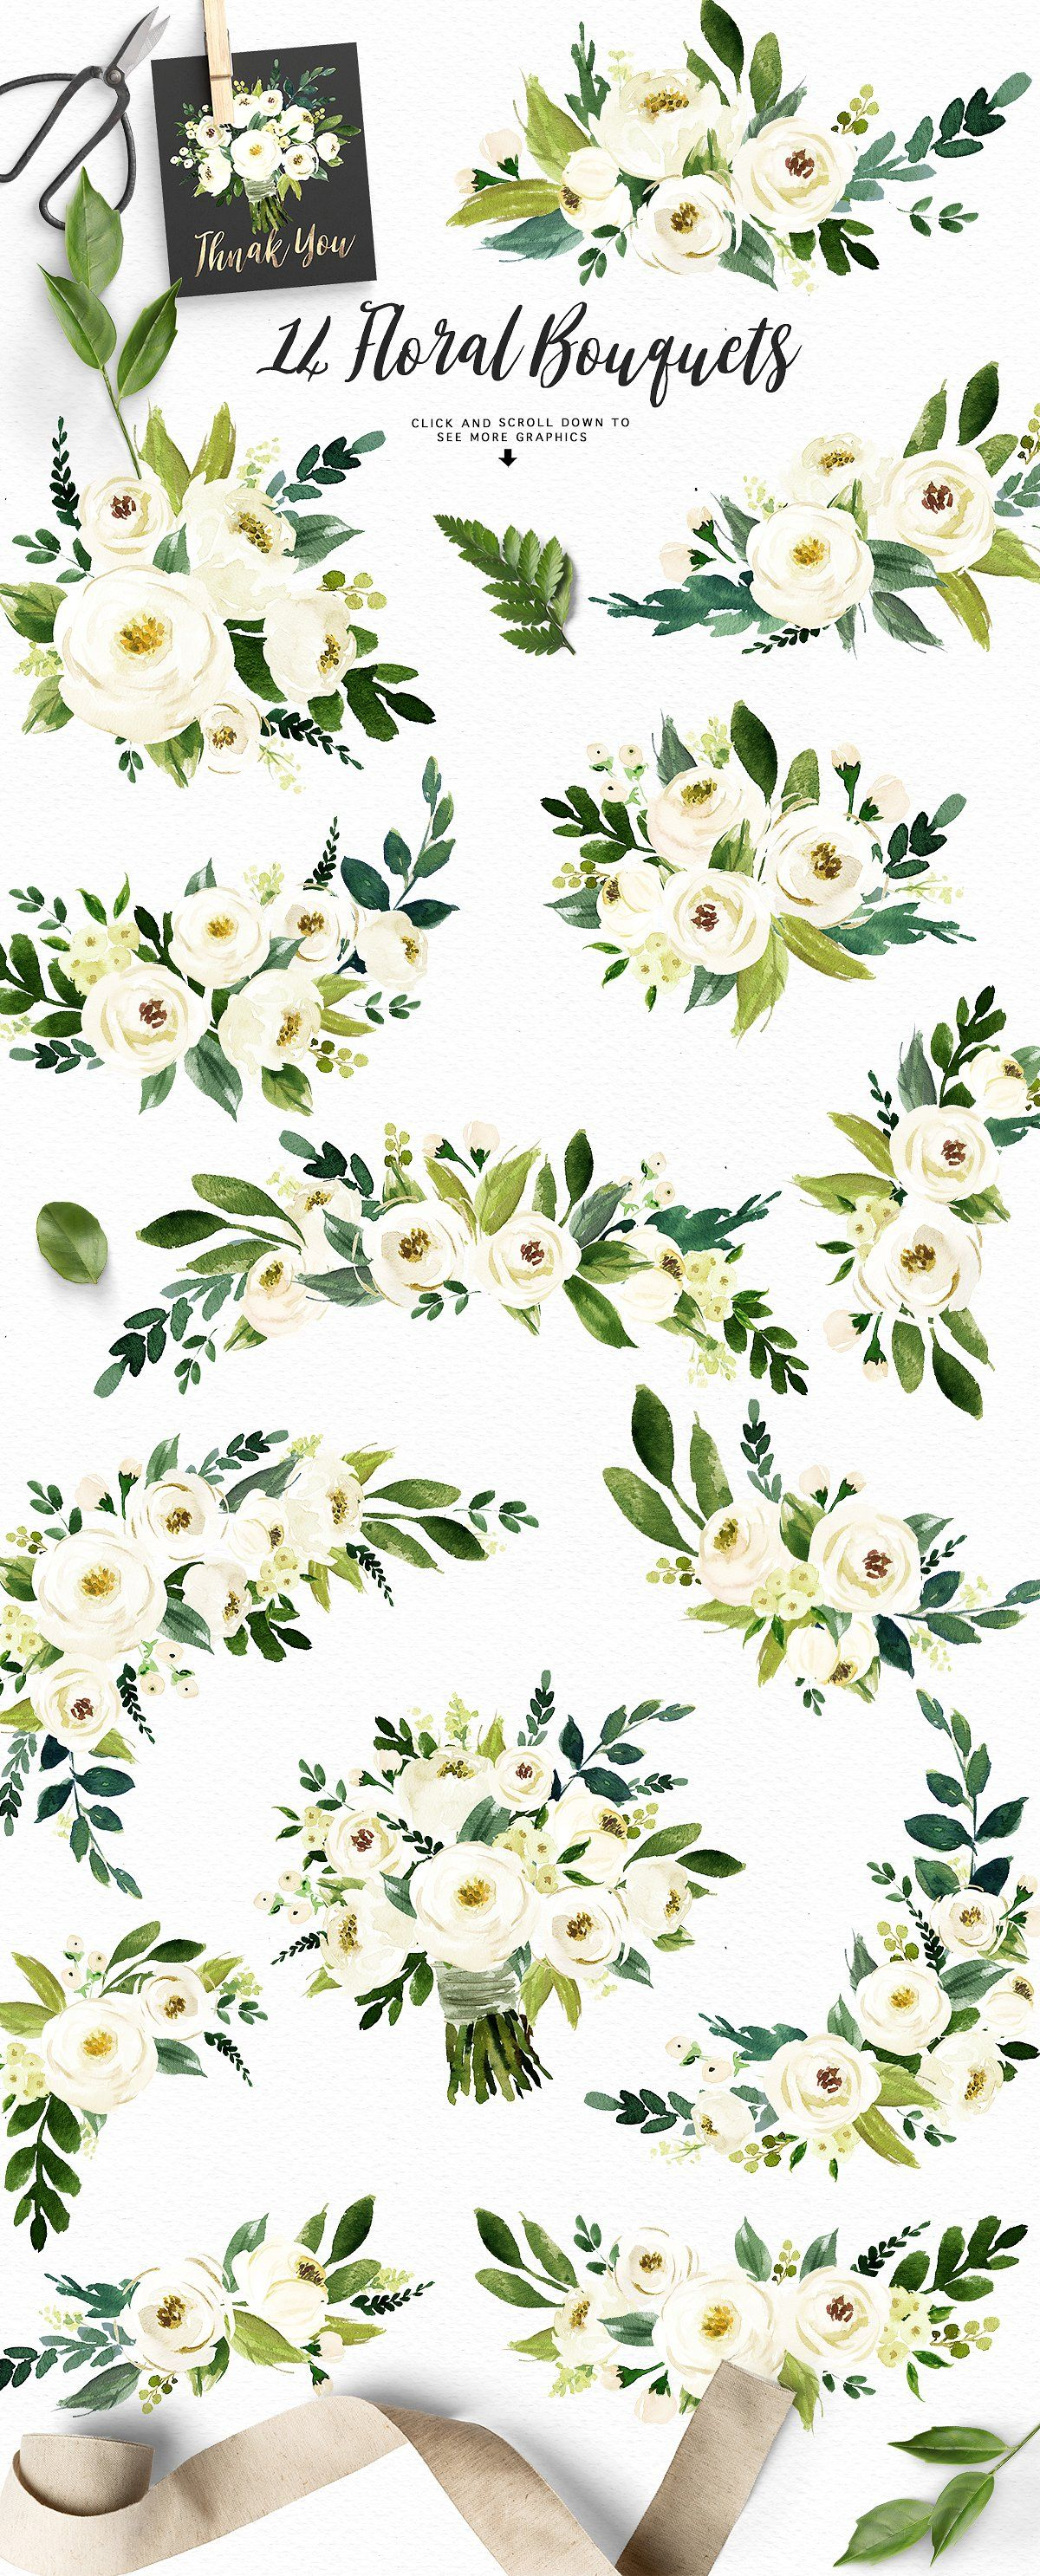 As Flores Brancas Flower Png Images Free Watercolor Flowers Flower Painting